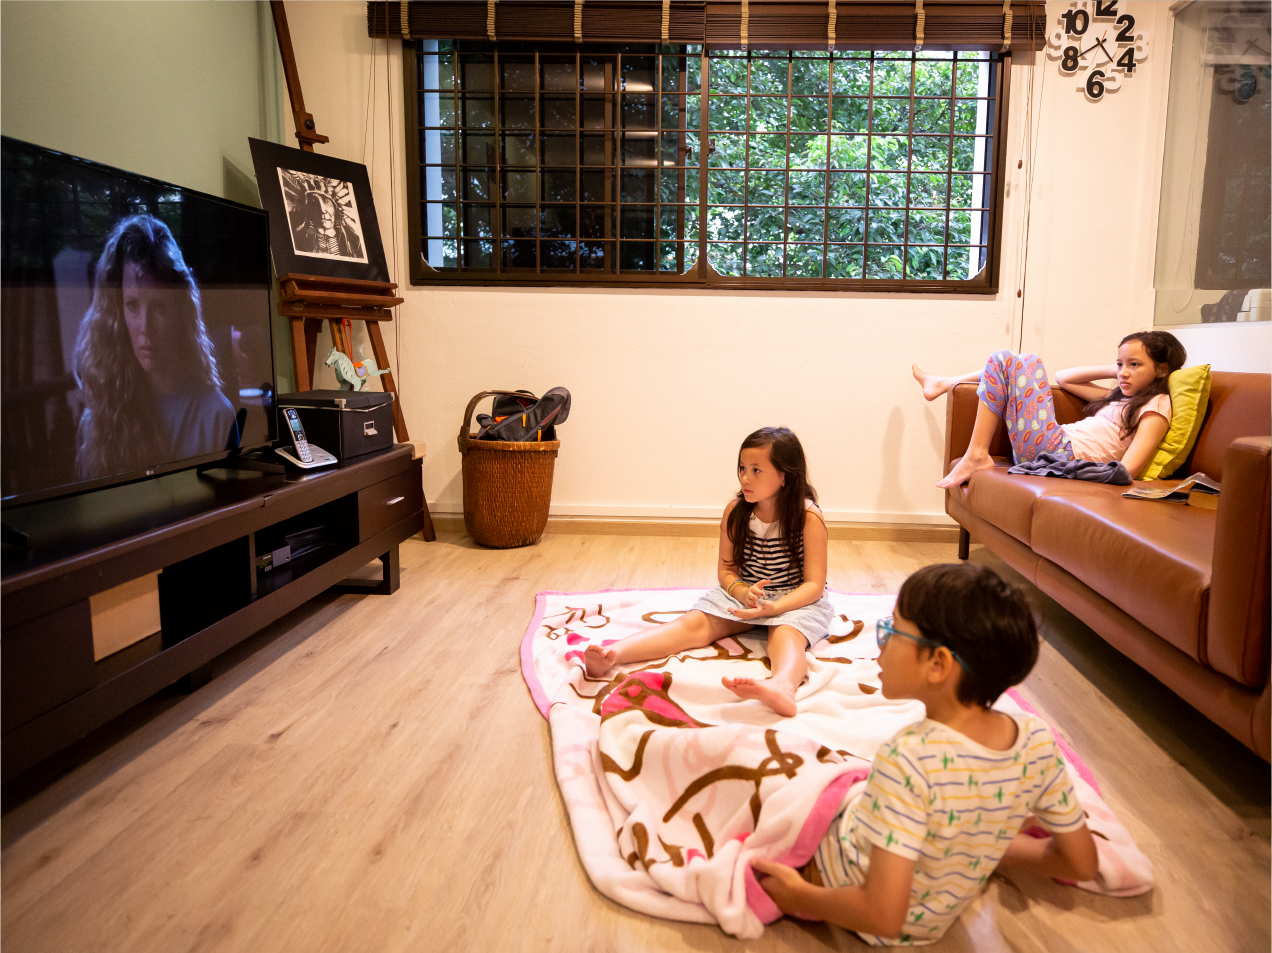 David's children watching TV in the living room of their HDB flat in Bishan